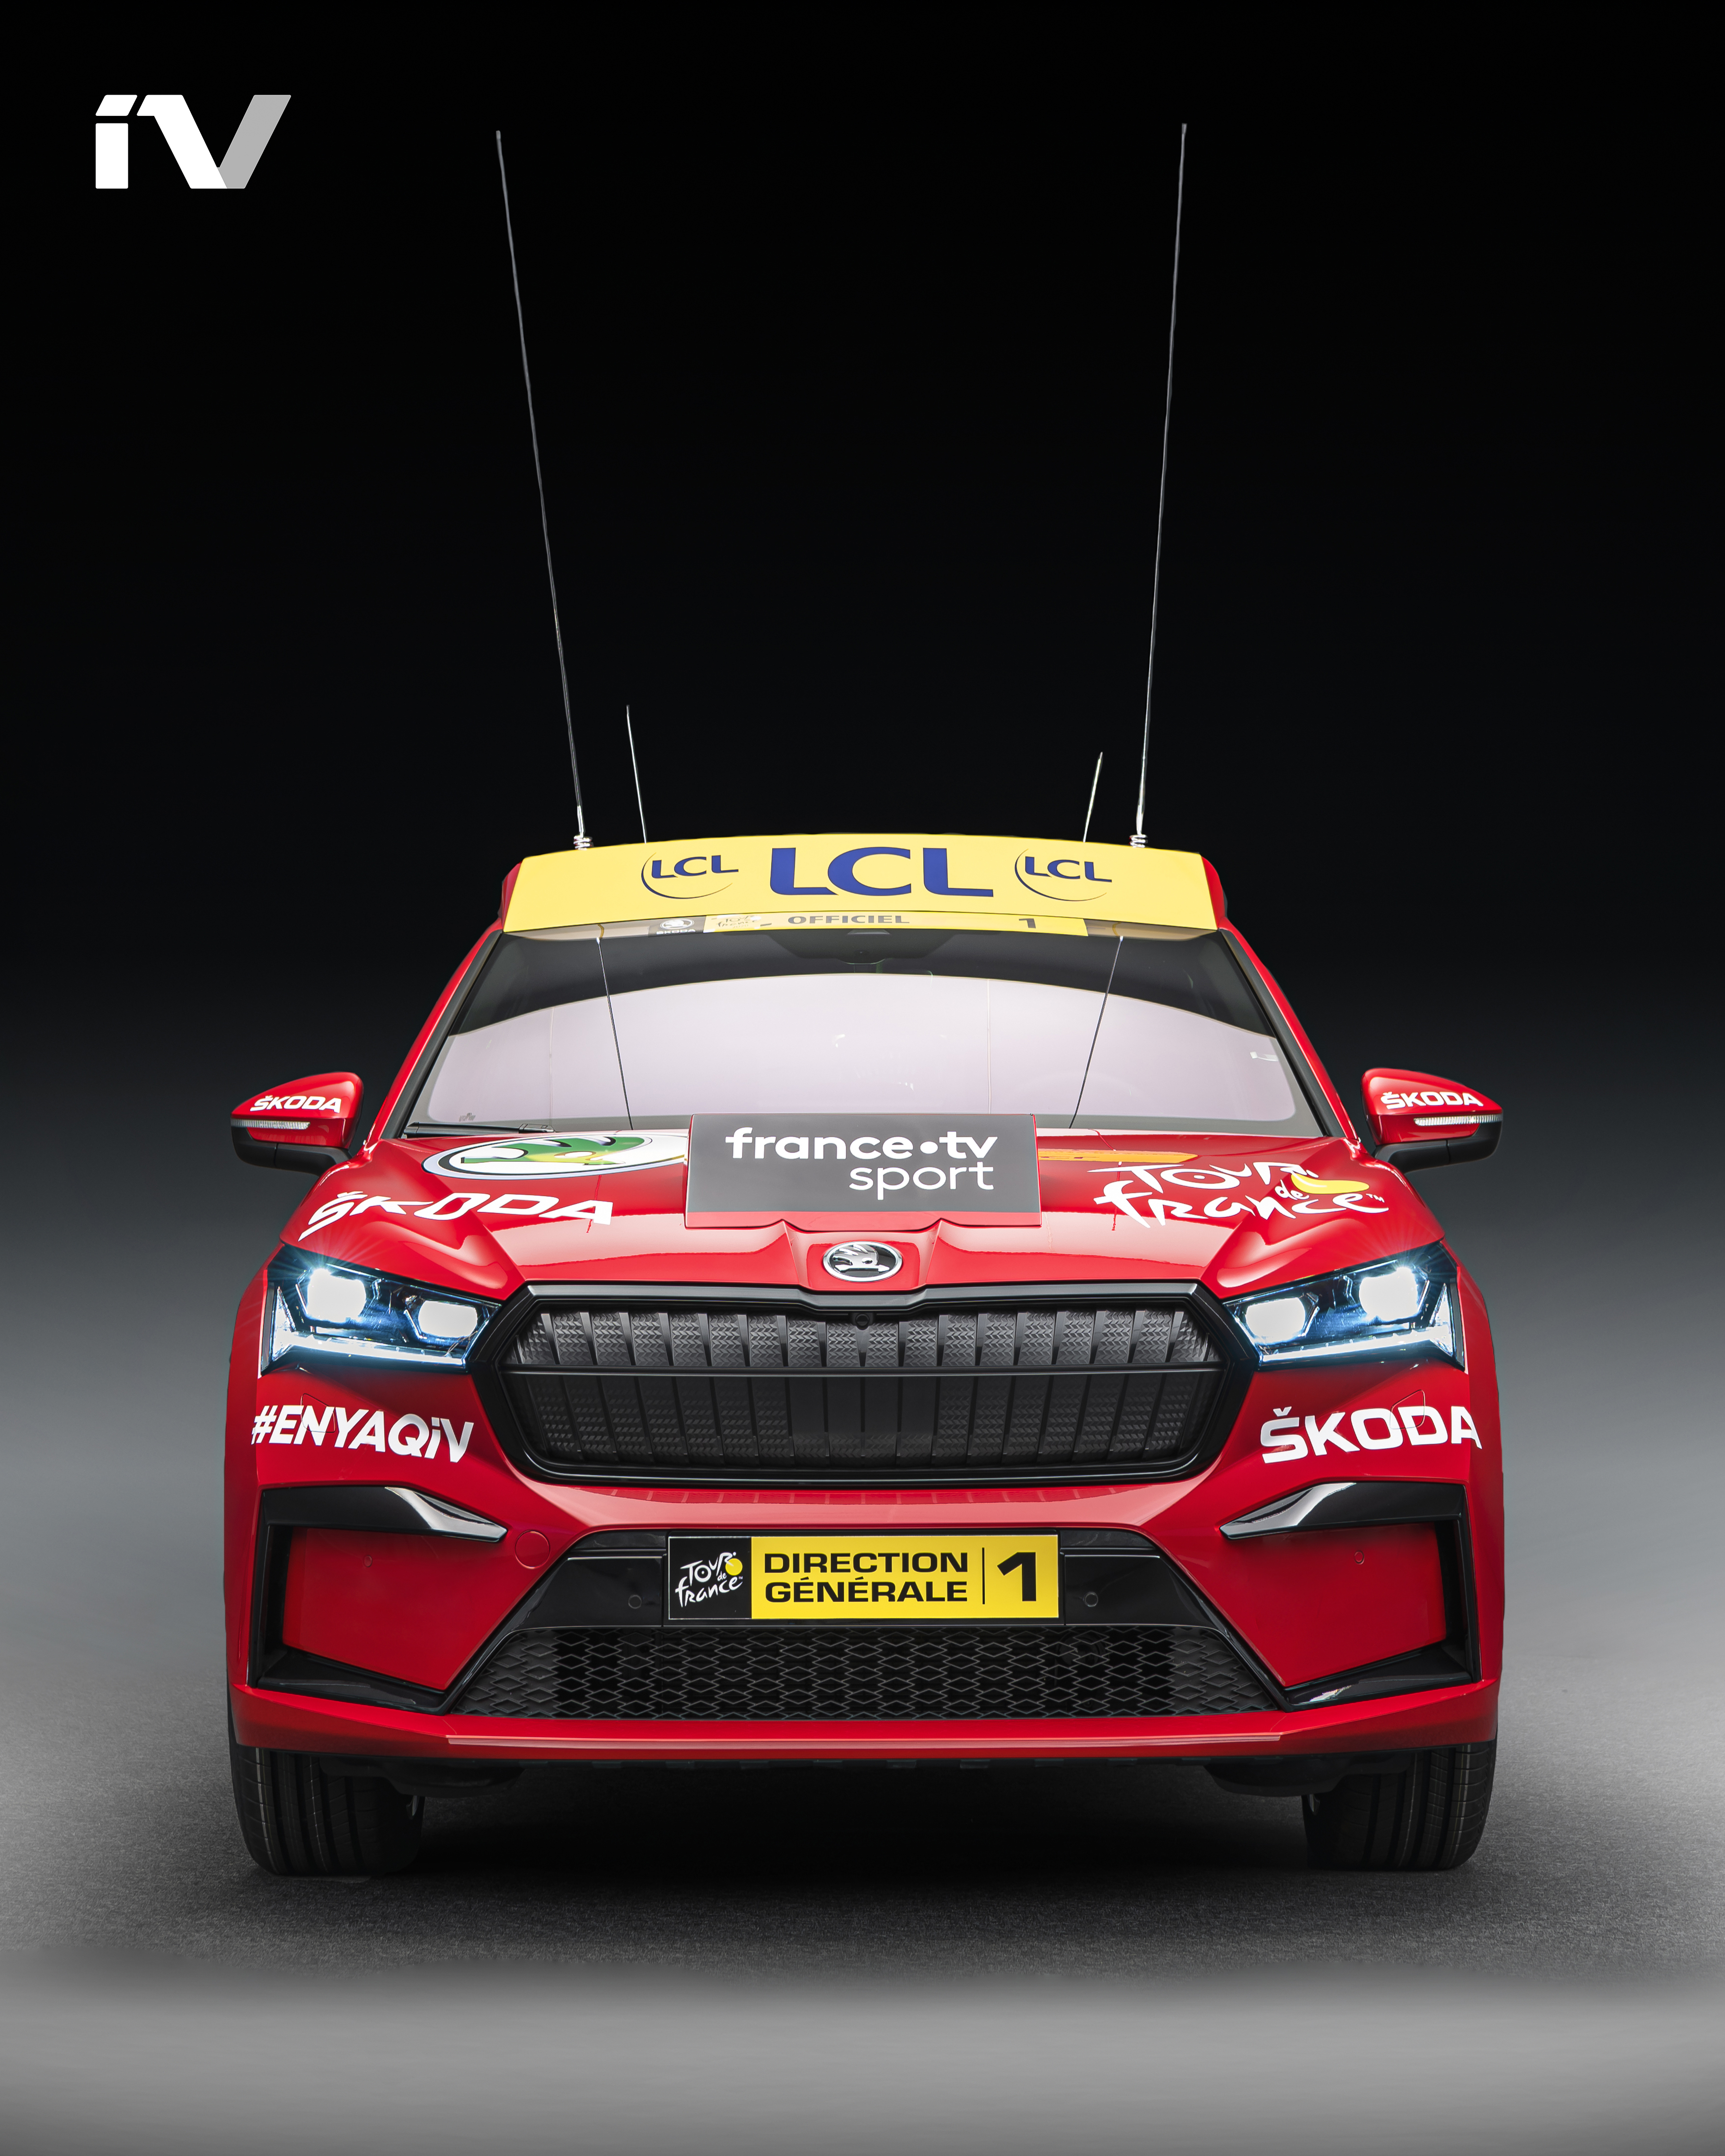 SKODA ENYAQ iV makes its debut as the lead vehicle in the Tour de France - Image 5